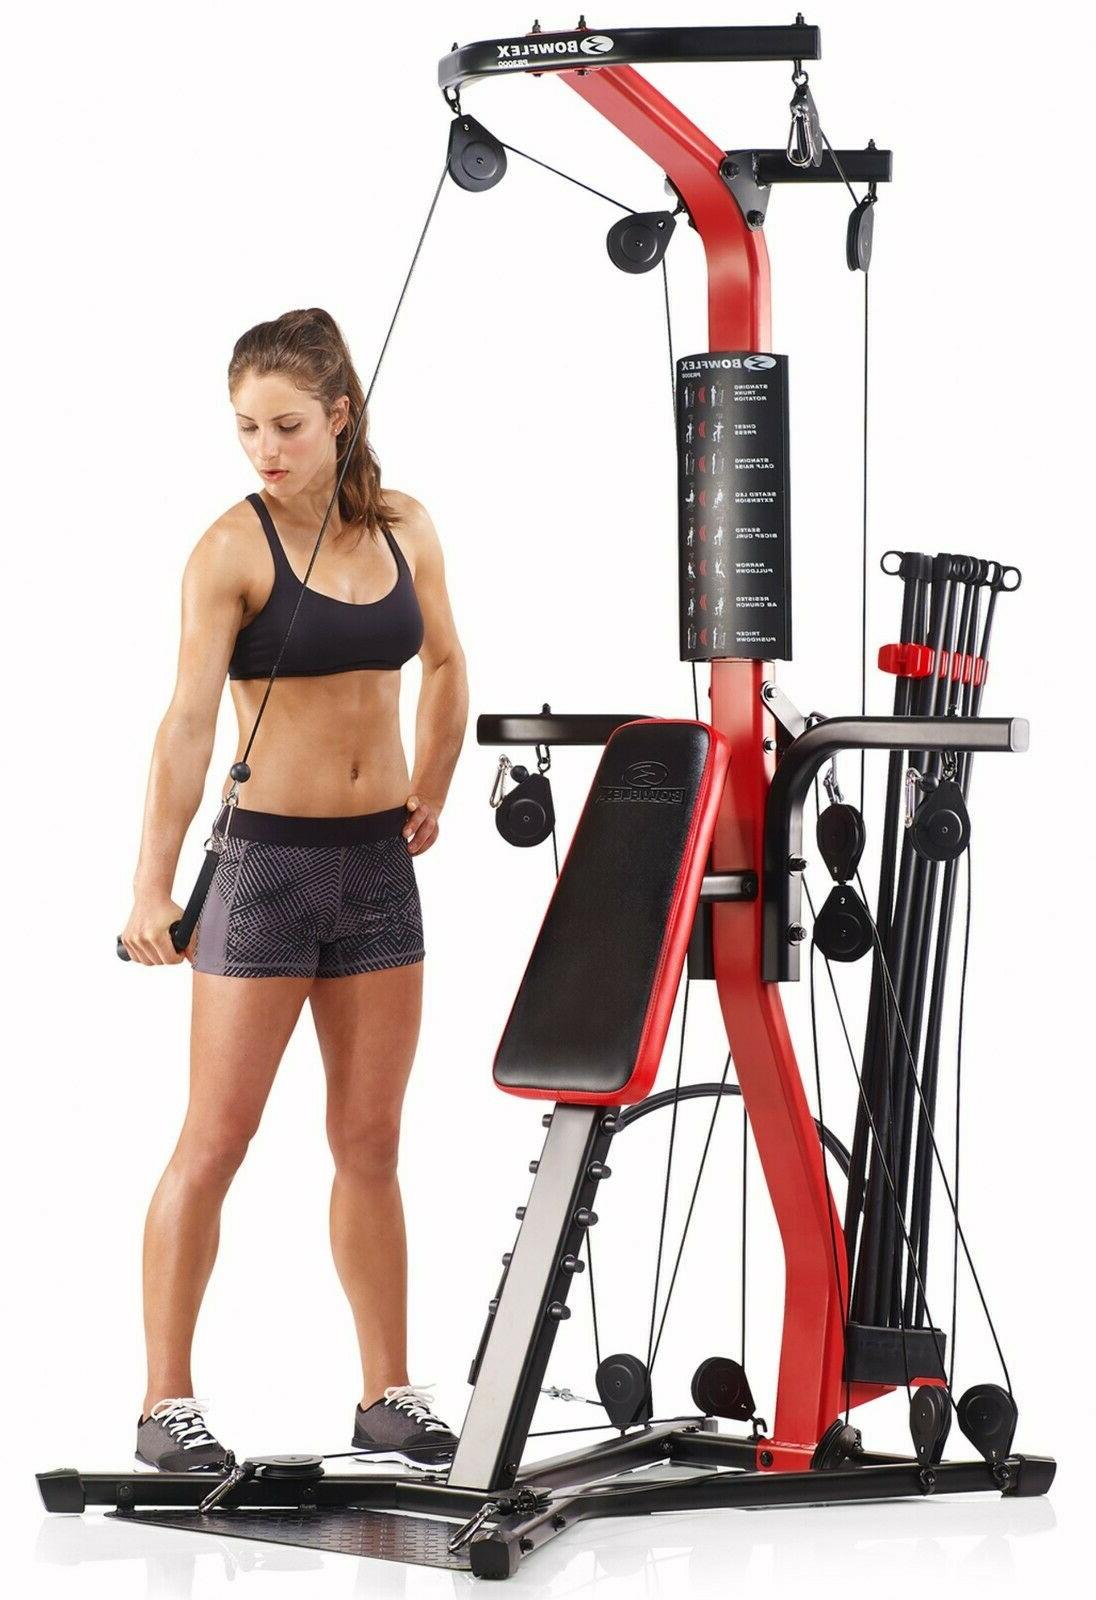 pr3000 home gym with 50 exercises